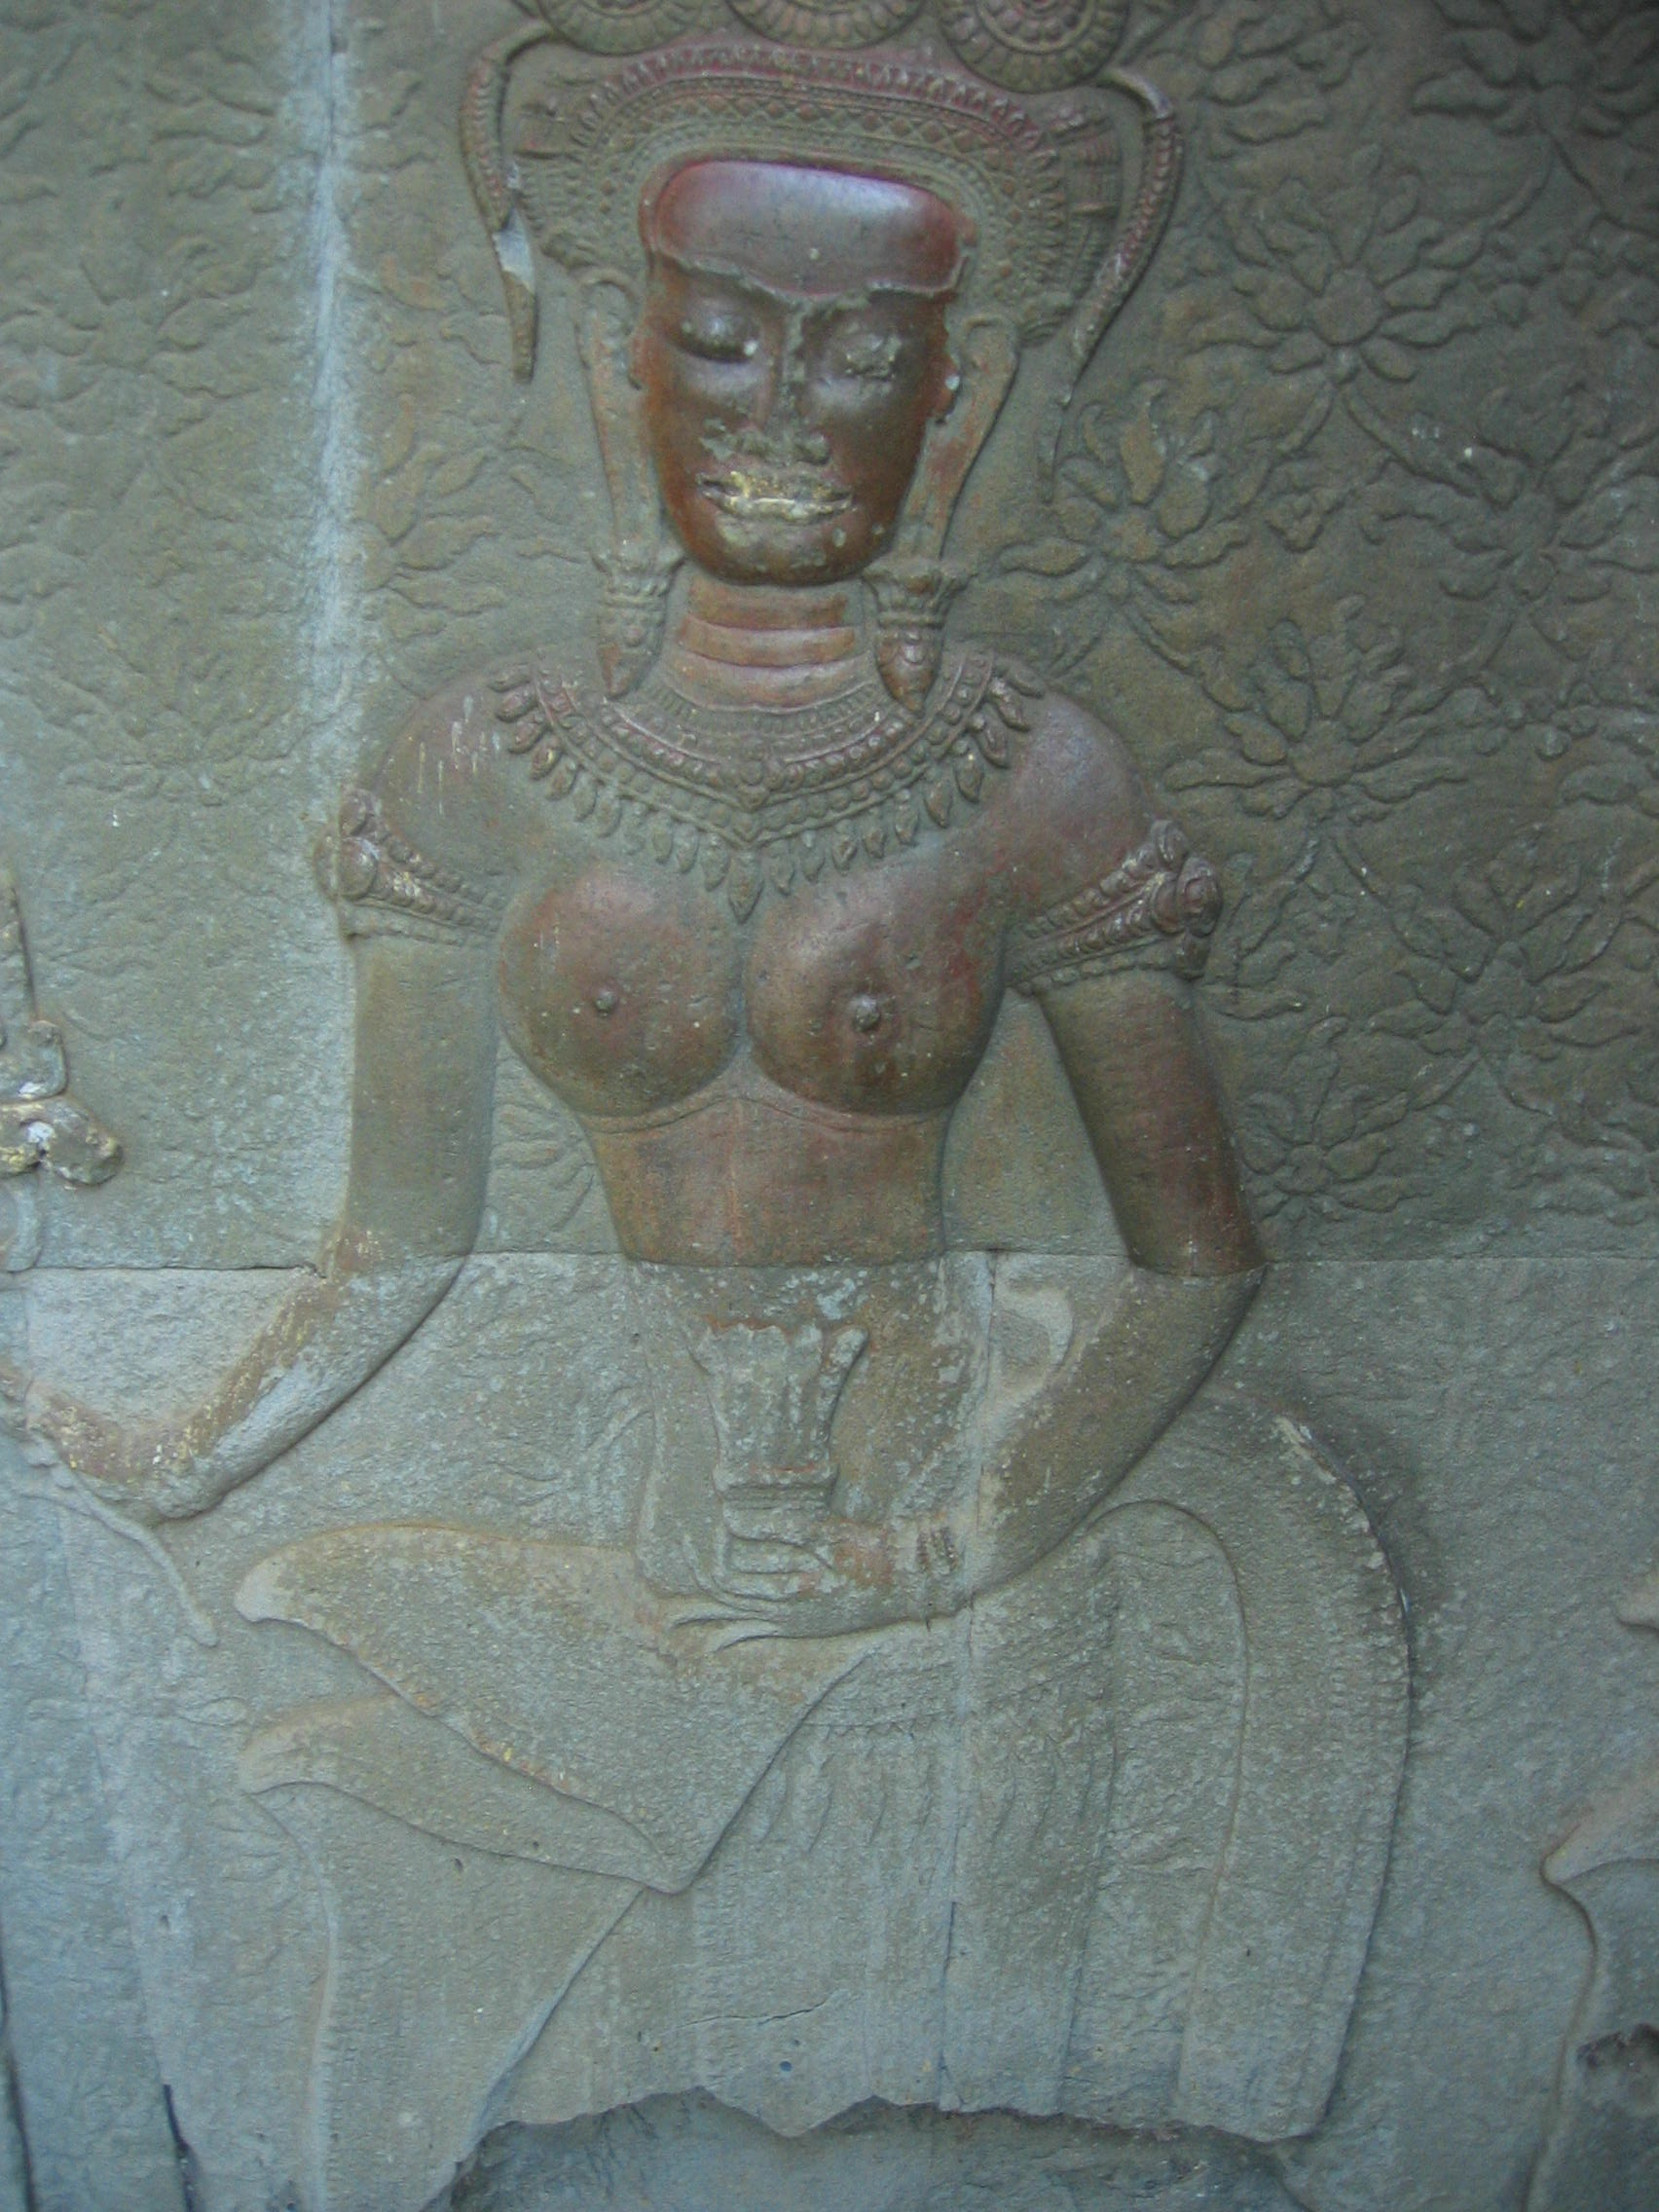 https://static.blog4ever.com/2012/11/719673/apsara-2.JPG